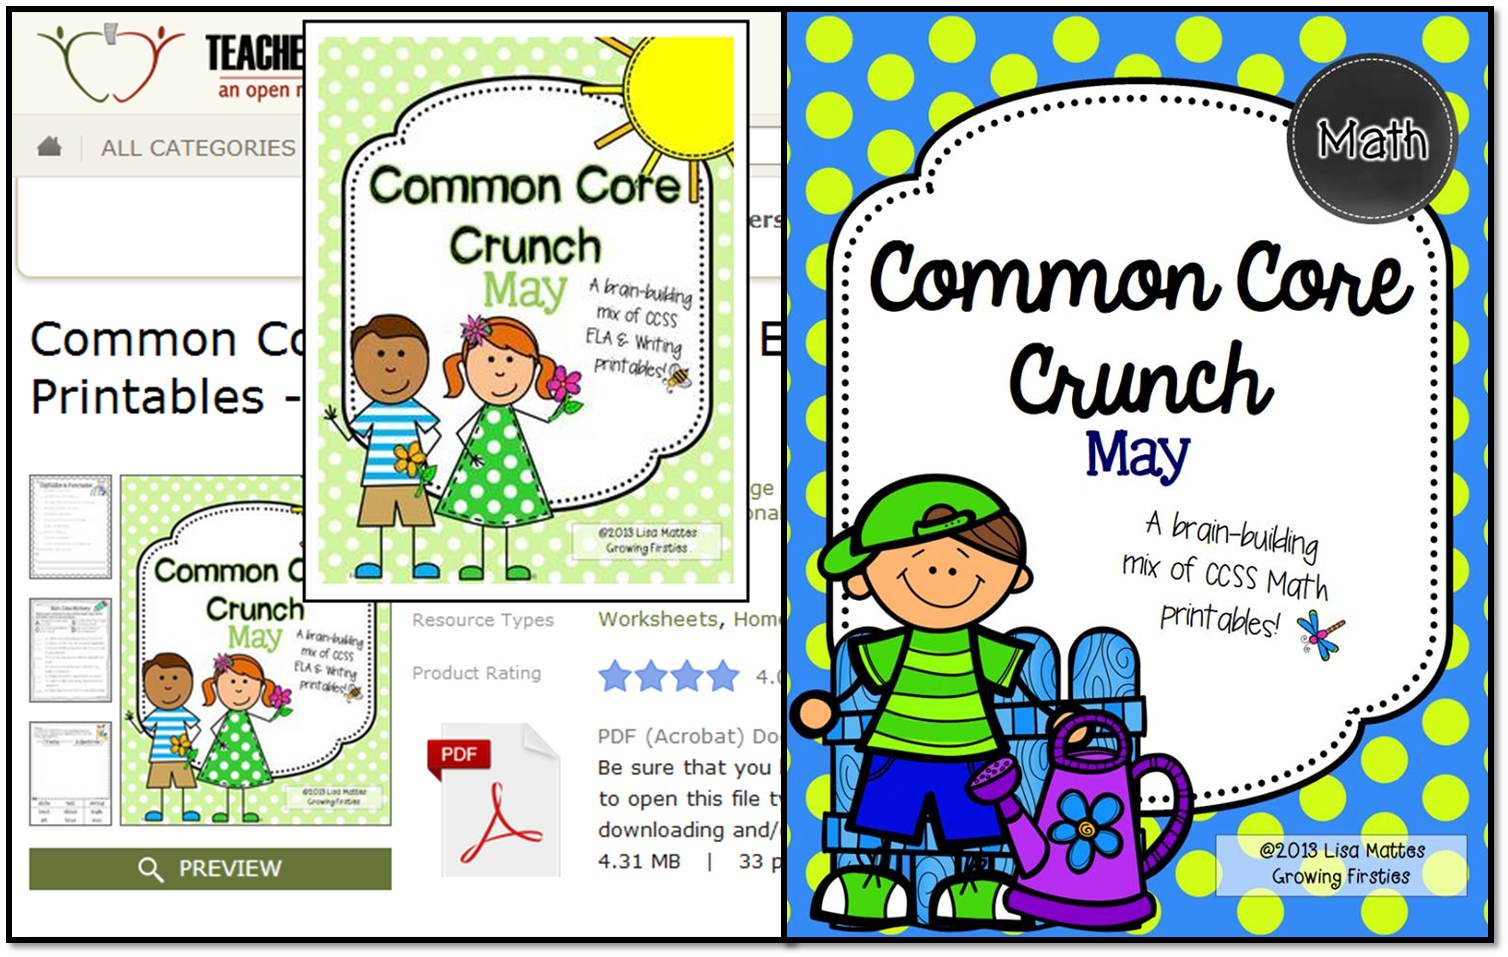 www.teacherspayteachers.com/Product/Common-Core-Crunch-May-ELA-CCSS-Printables-Growing-Firsties-677395